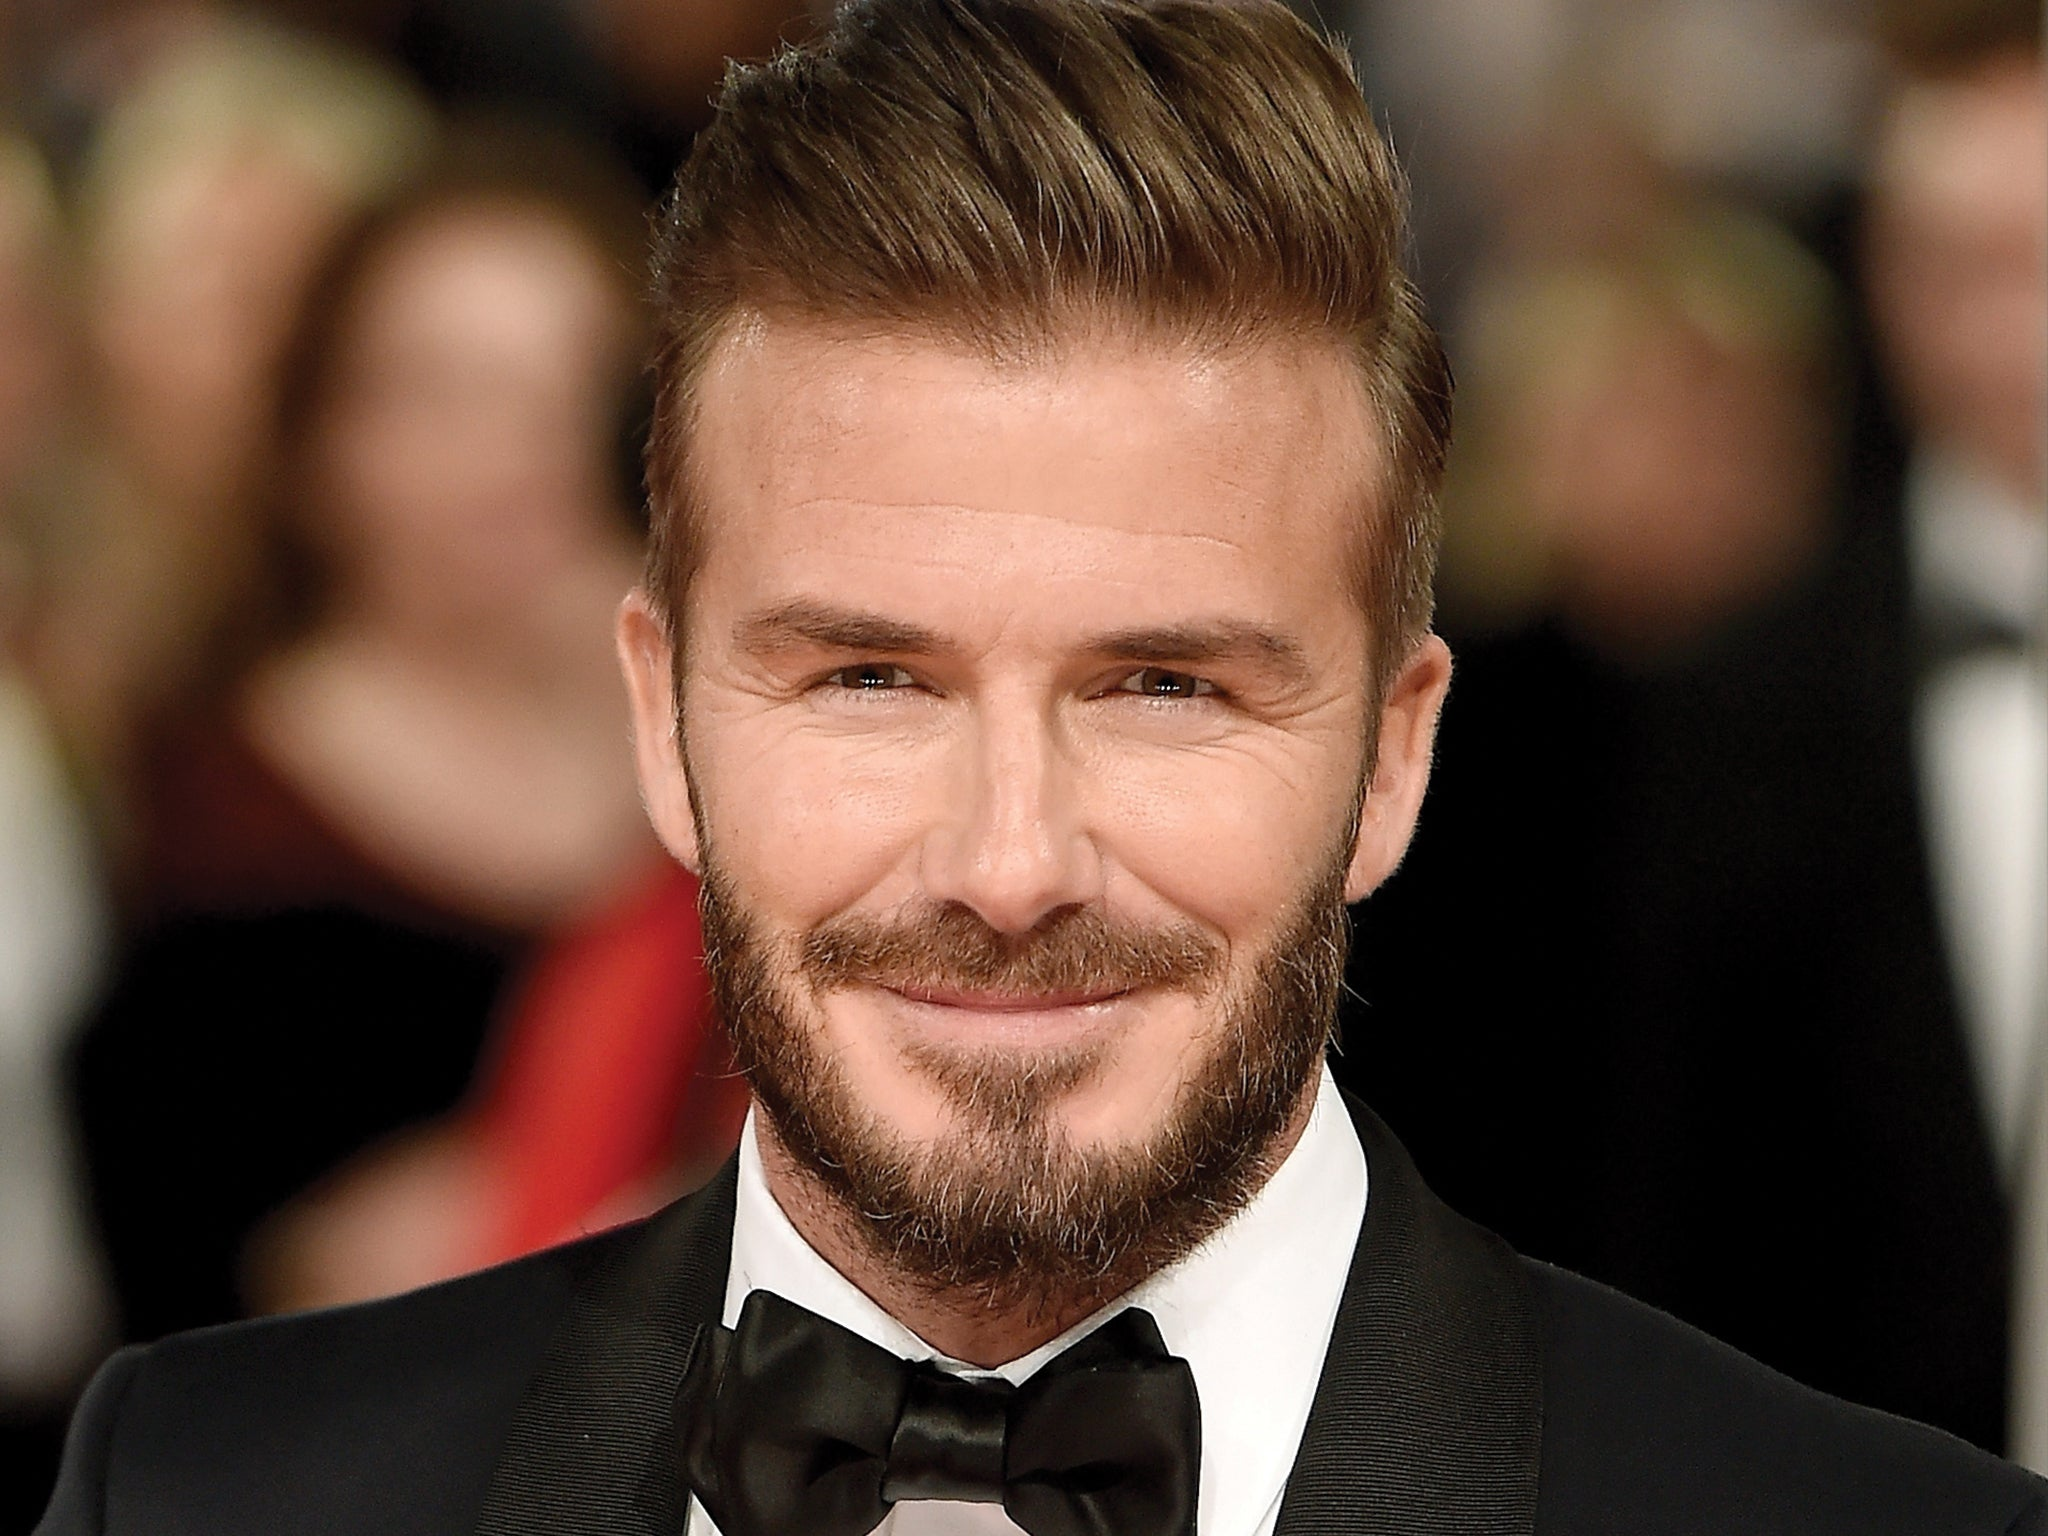 david beckham instinctdavid beckham classic, david beckham instinct, david beckham 2016, david beckham 2017, david beckham style, david beckham classic blue, david beckham instagram, david beckham haircut, david beckham википедия, david beckham the essence, david beckham tattoo, david beckham духи, david beckham parfum, david beckham beyond, david beckham real madrid, david beckham wiki, david beckham фото, david beckham son, david beckham hair, david beckham h&m